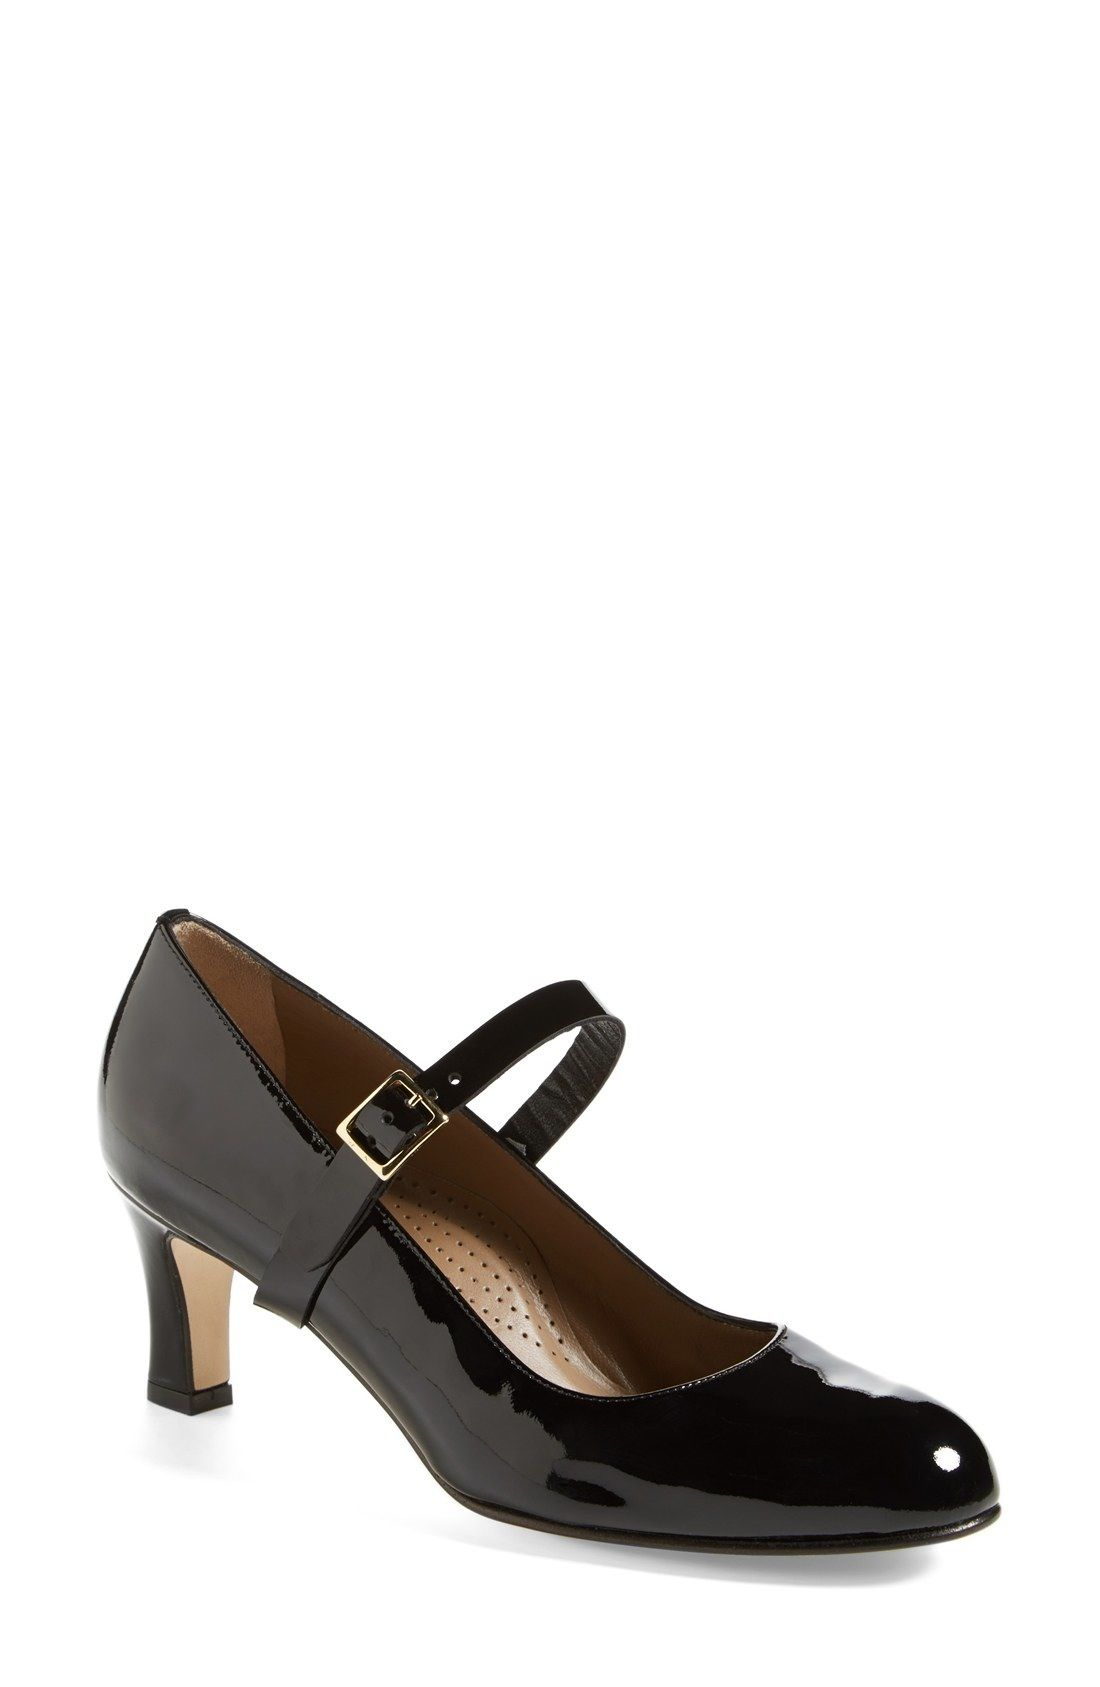 Anyi Lu Tracy Patent Leather Pumps outlet finishline free shipping popular ckUKOKh